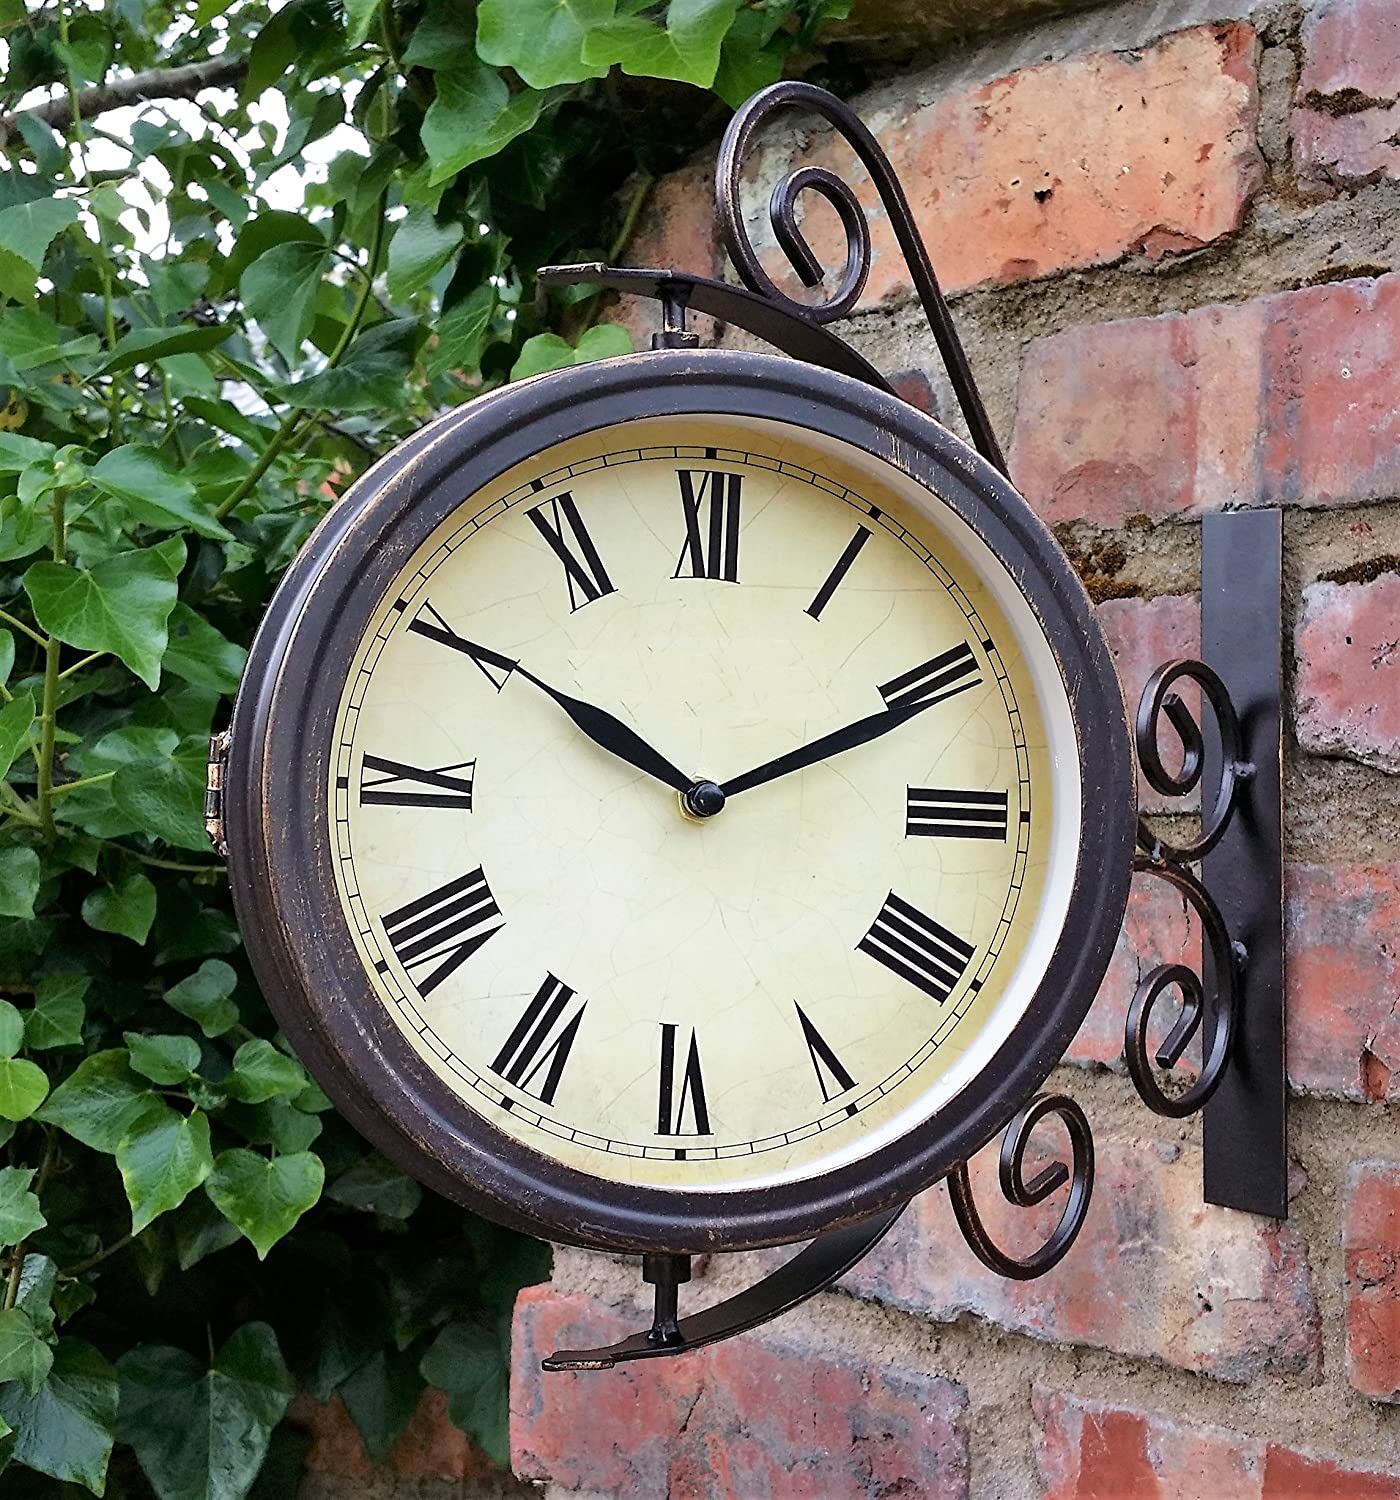 Warwick Outdoor Garden Clock With Thermometer And Swivel Station Bracket    31.5cm